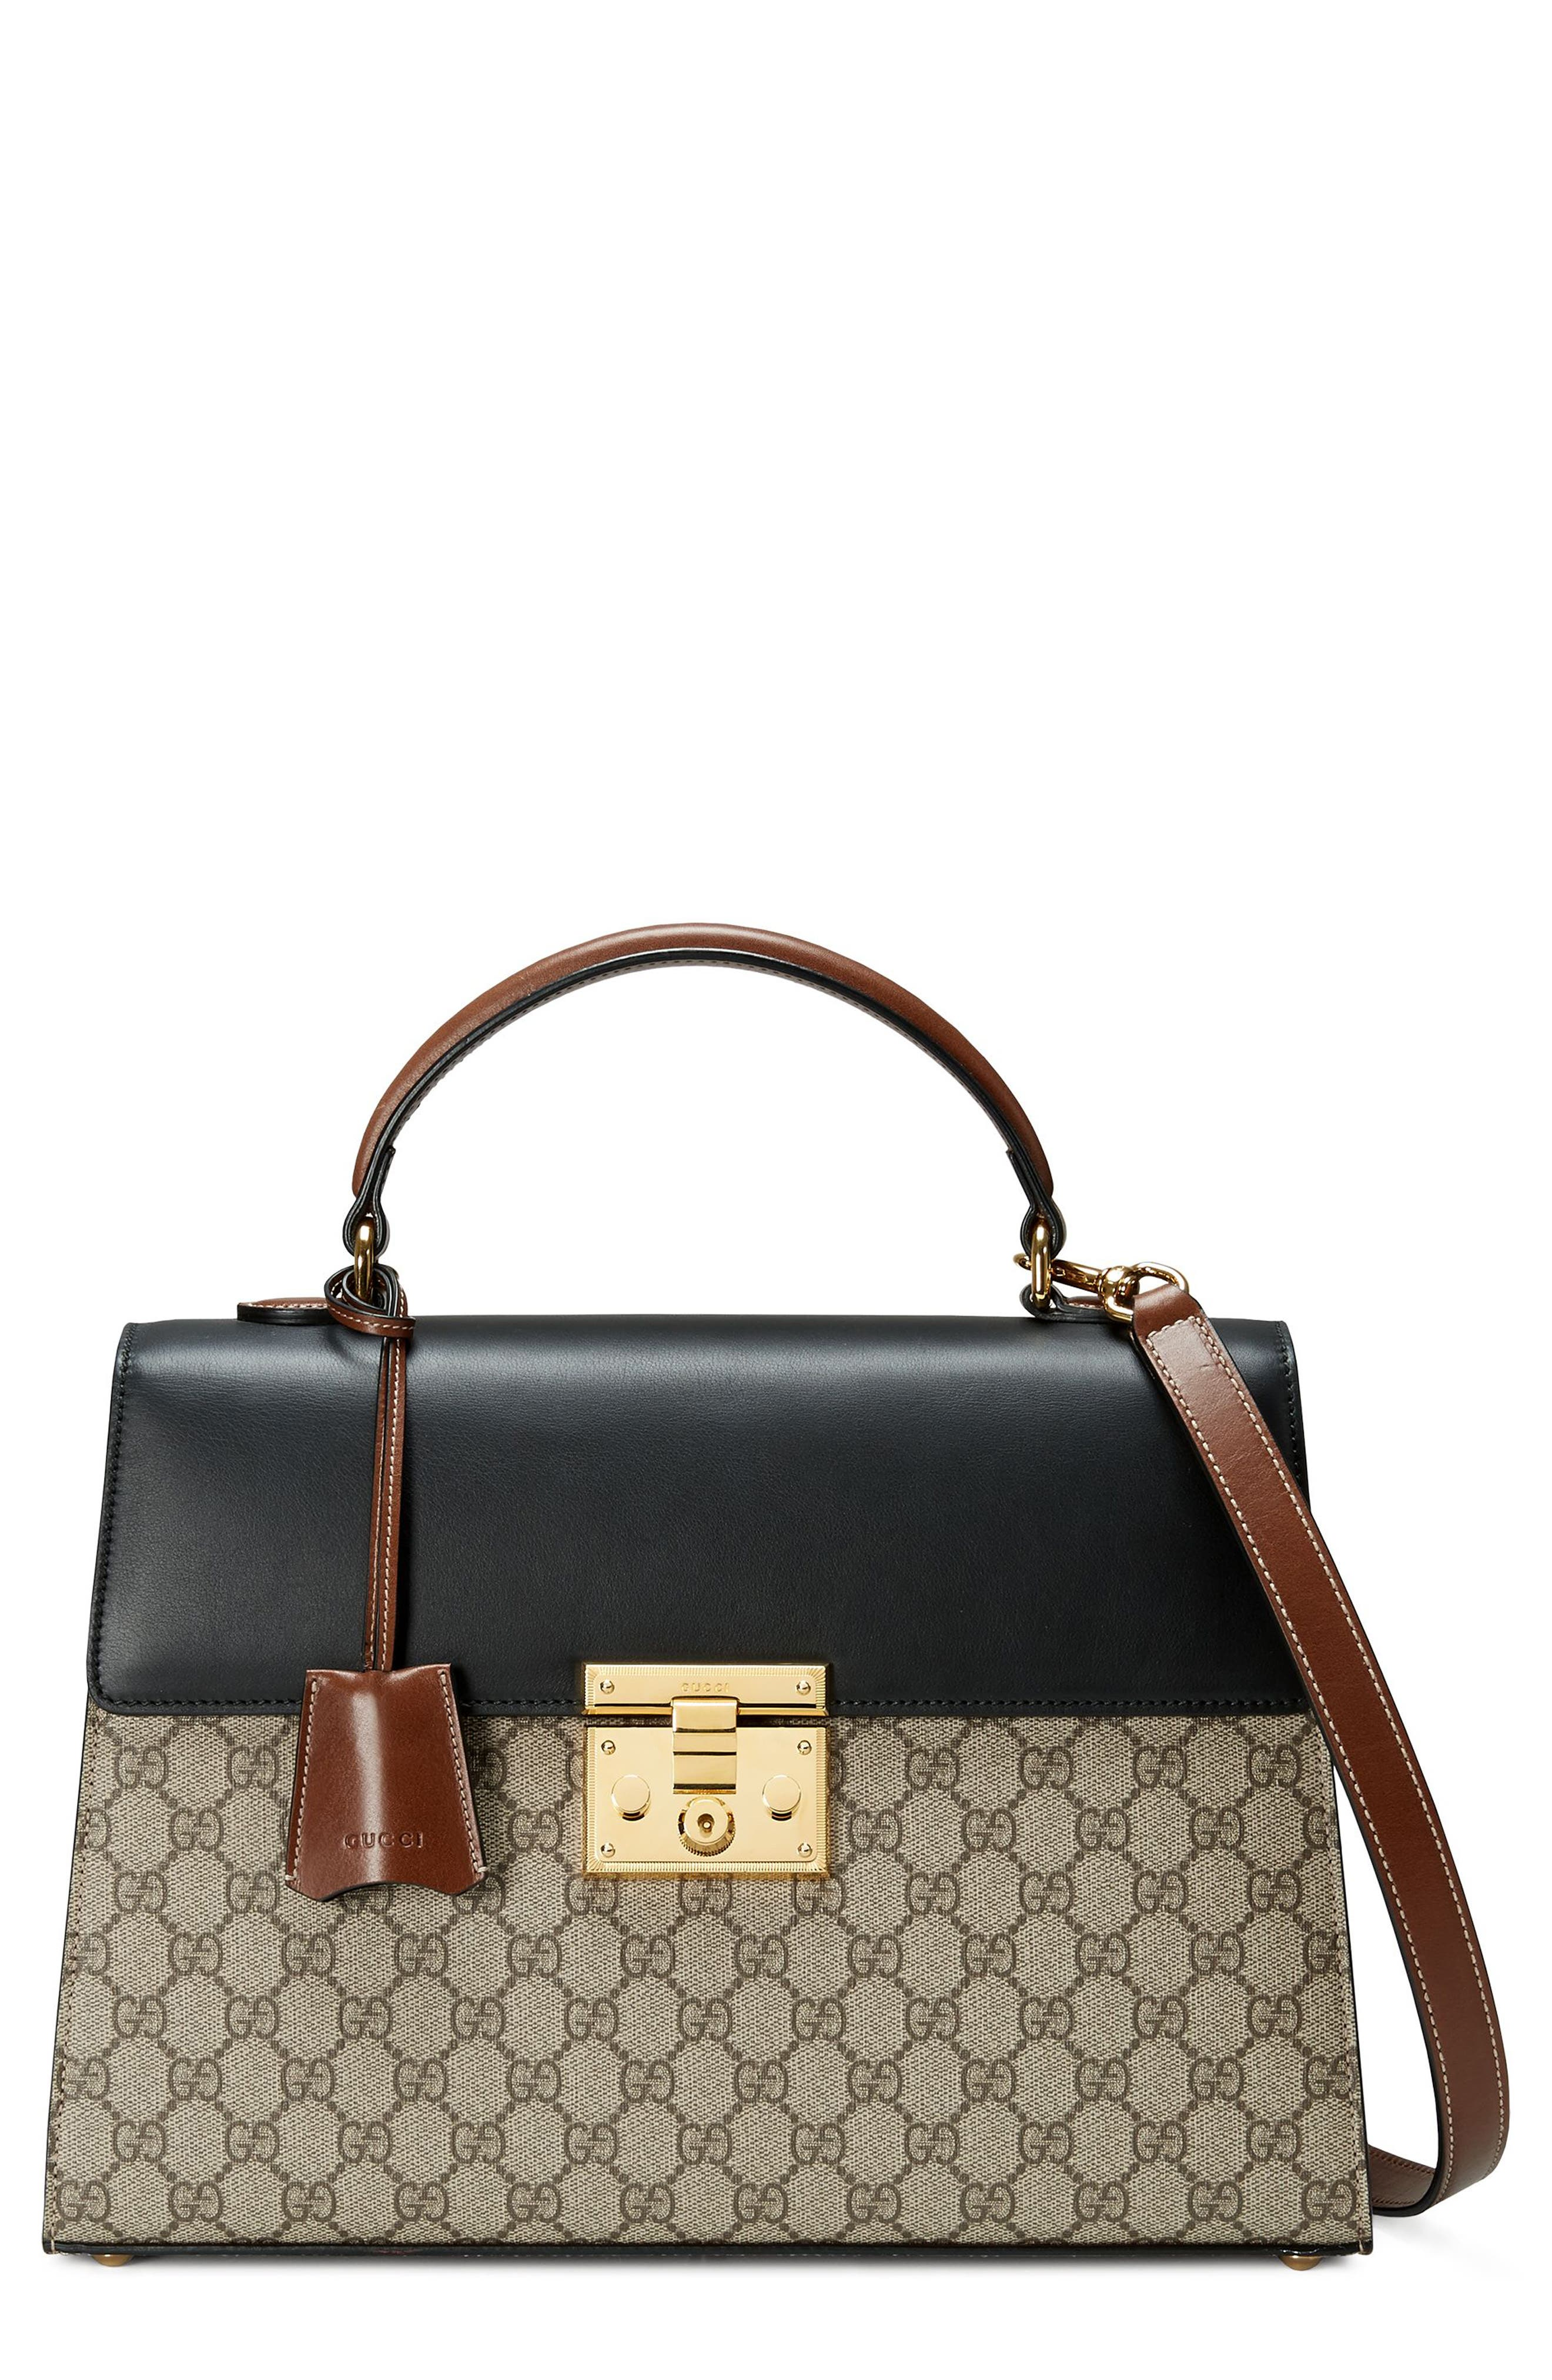 Medium Padlock Top Handle GG Supreme Canvas & Leather Bag,                         Main,                         color, Beige Ebony/Nero/Cuir